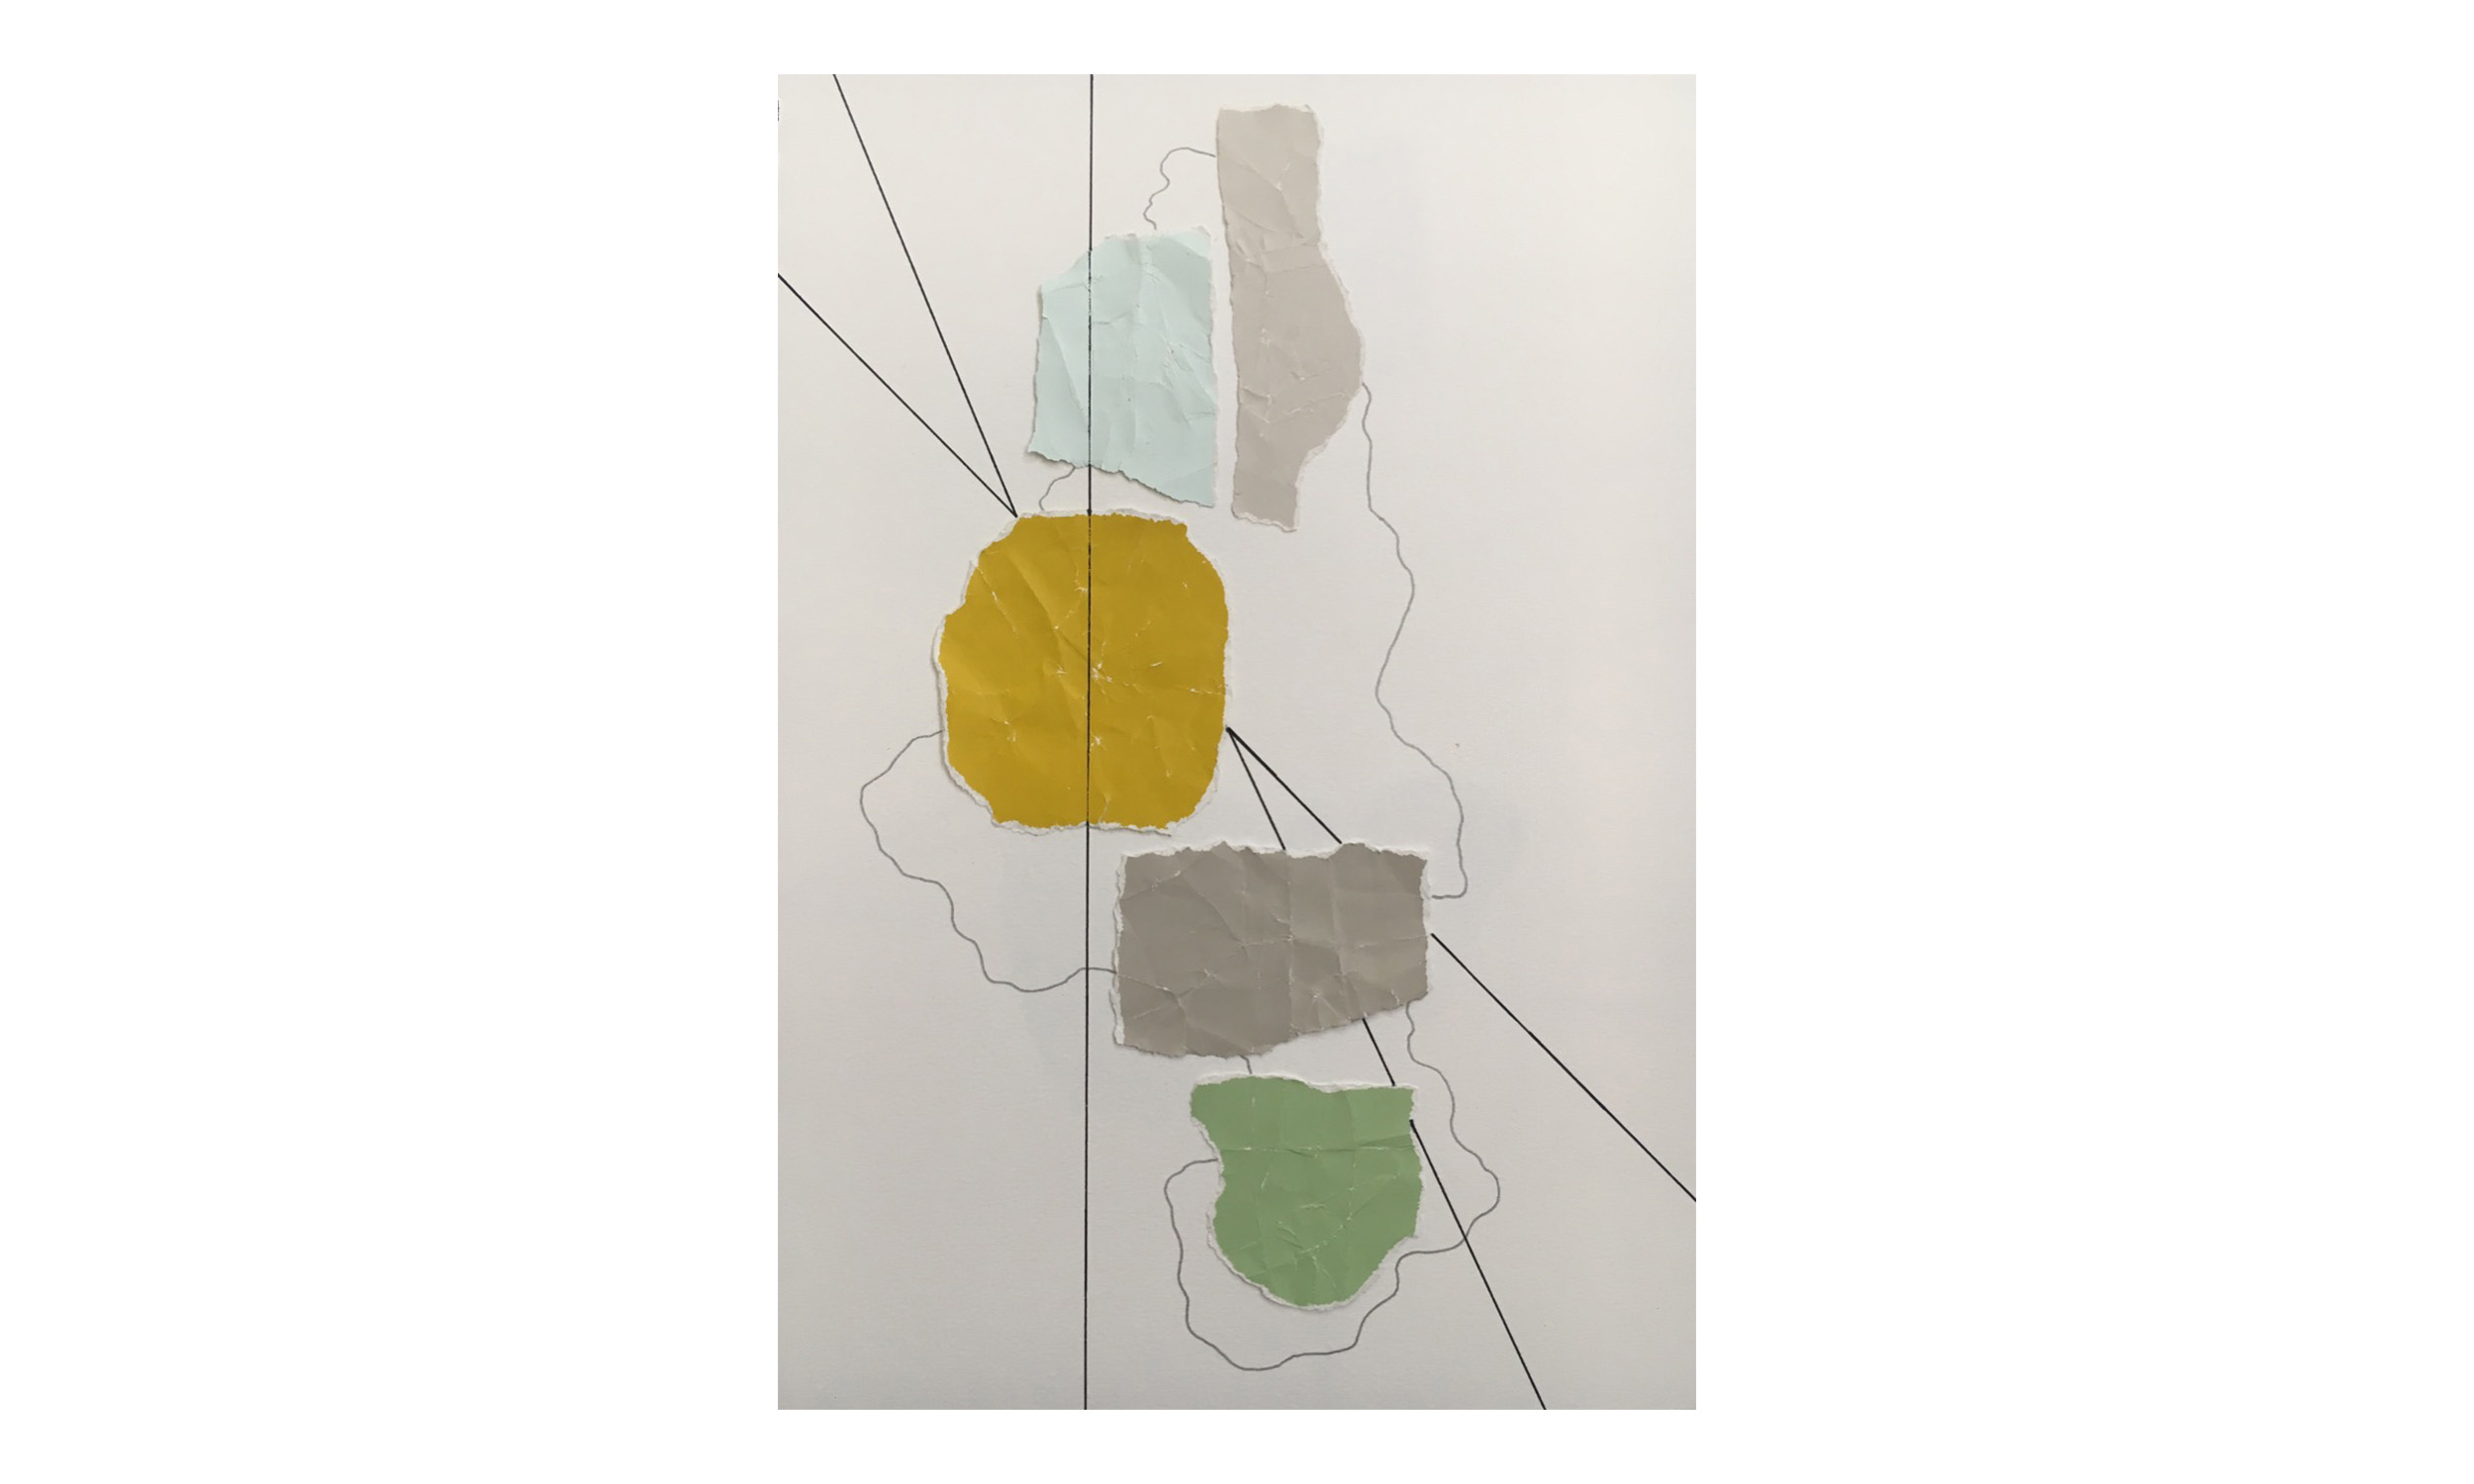 Imaginary Maps 2 , paint chips on paper, pen, pencil, 9 x 12 inches, unframed, $200    Contact us for purchase